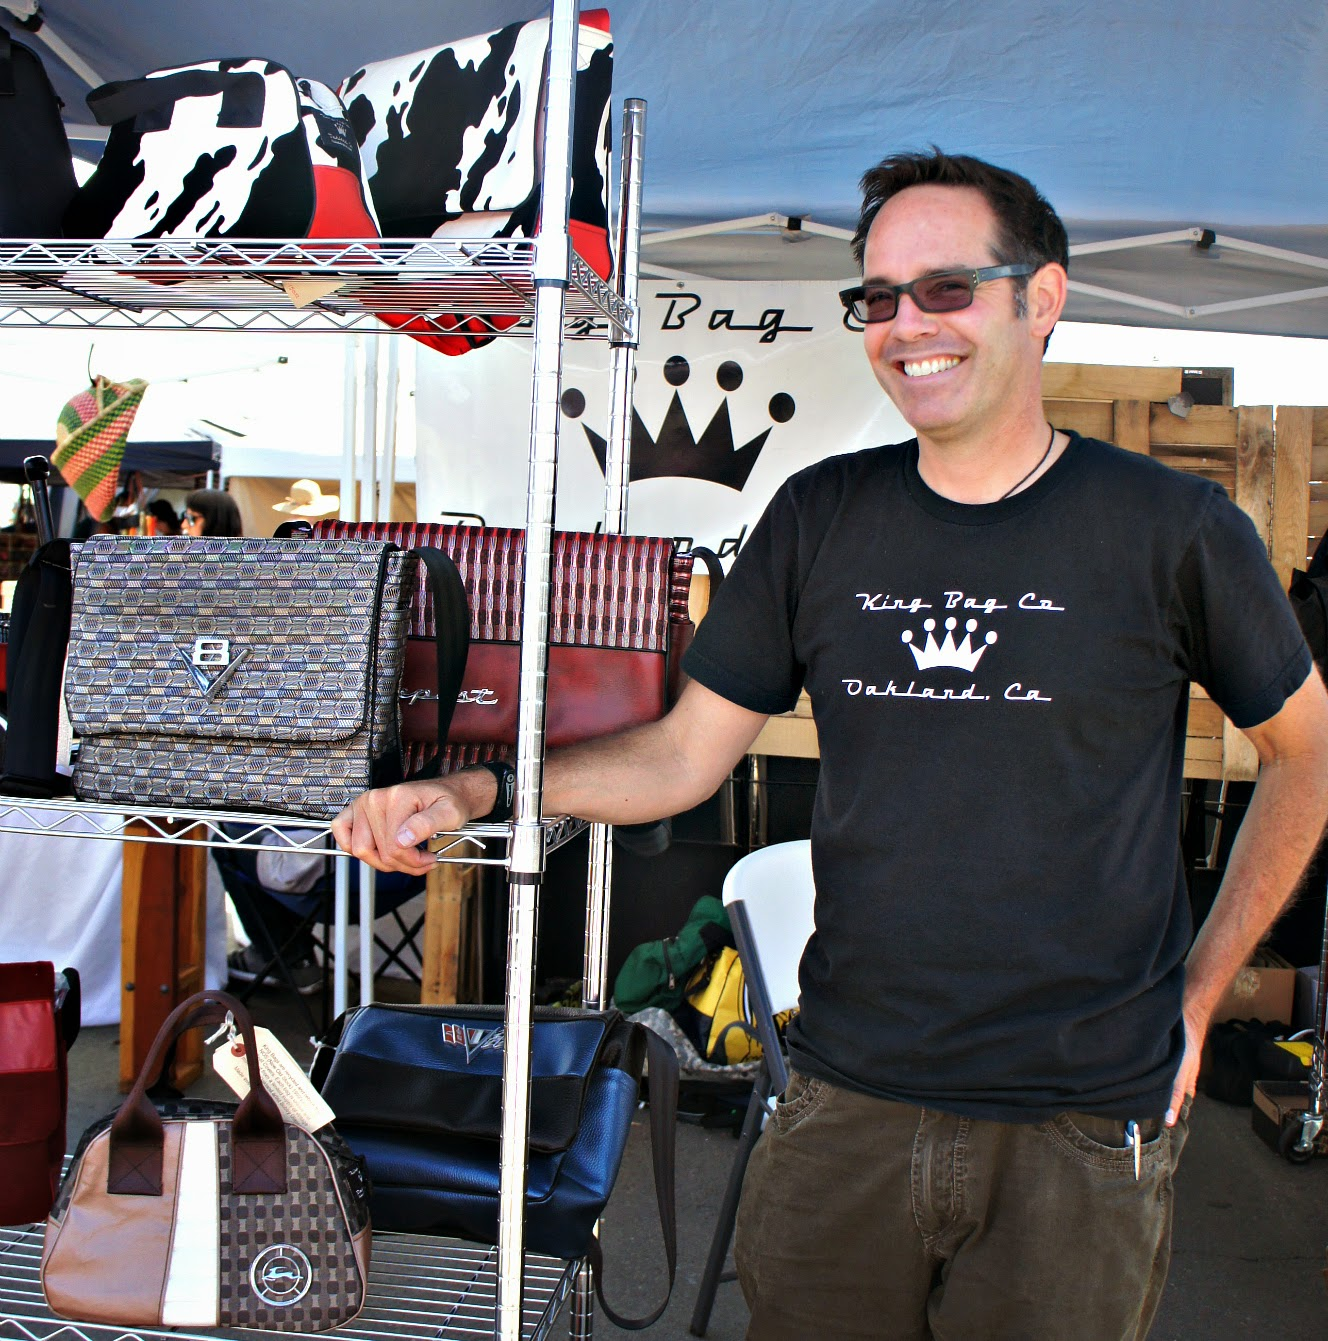 King Bag Company feature & promo at Shop Small Saturday Showcase on Diane's Vintage Zest!